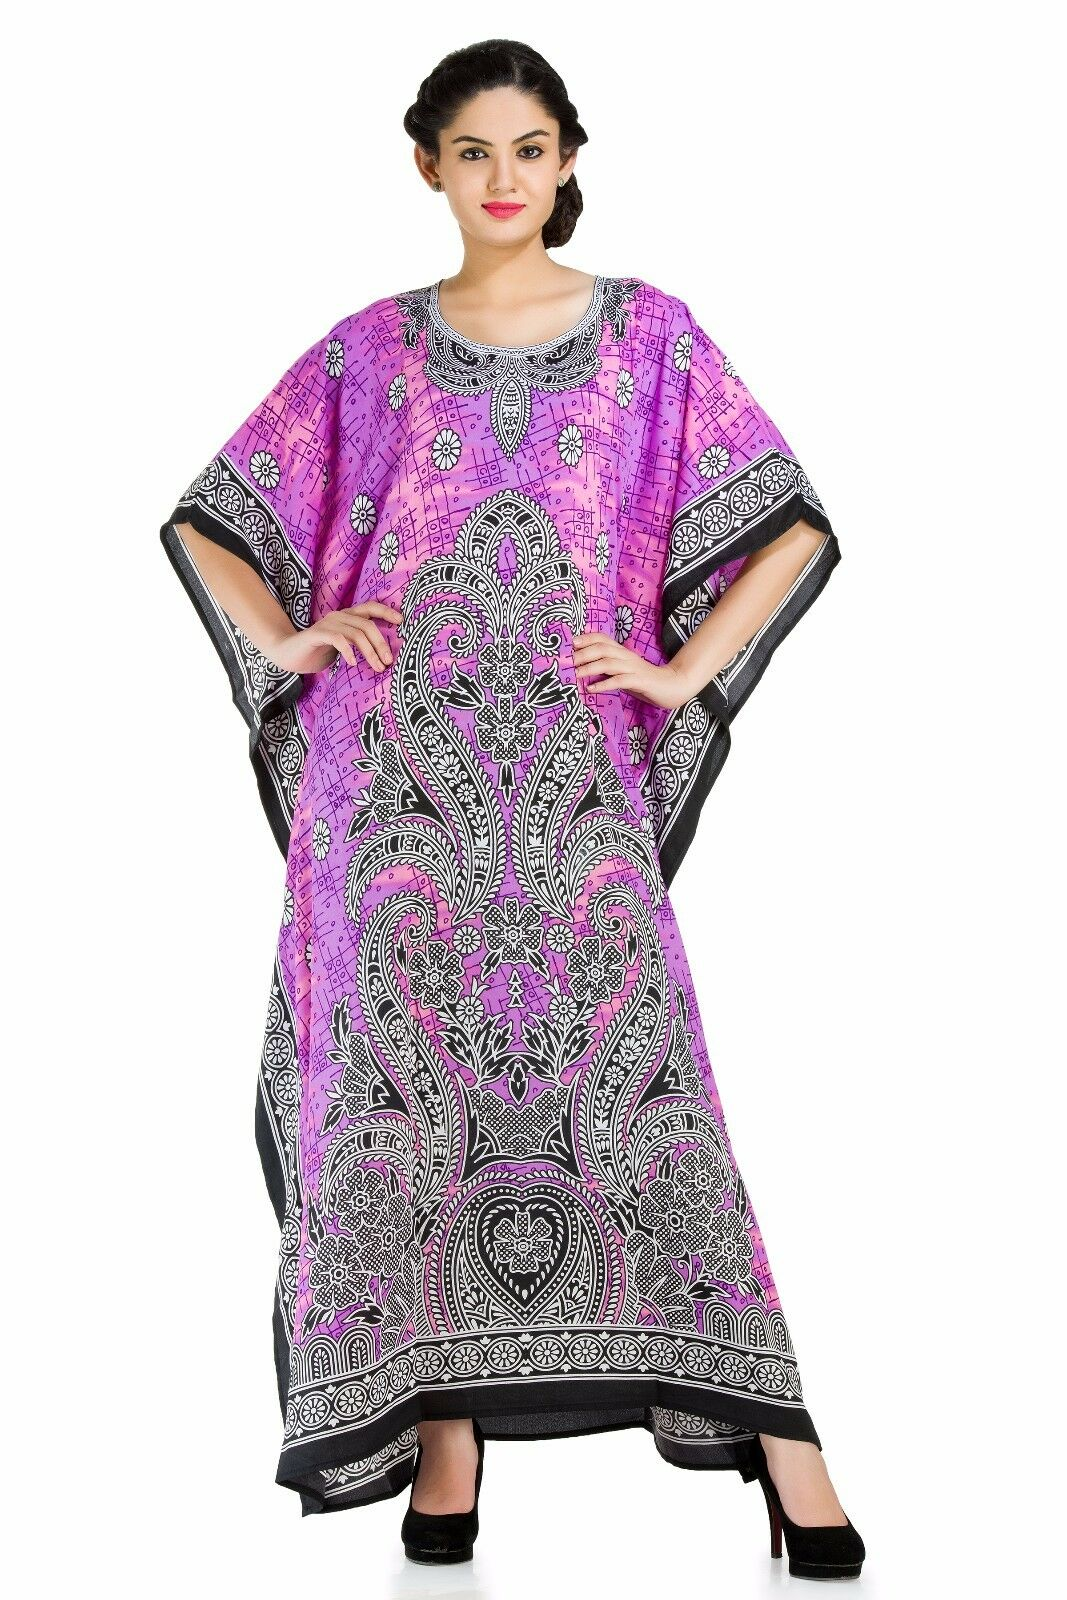 PLUS SIZE PURPLE Hued Caftan Women Dress Hippie Boho Maxi ...